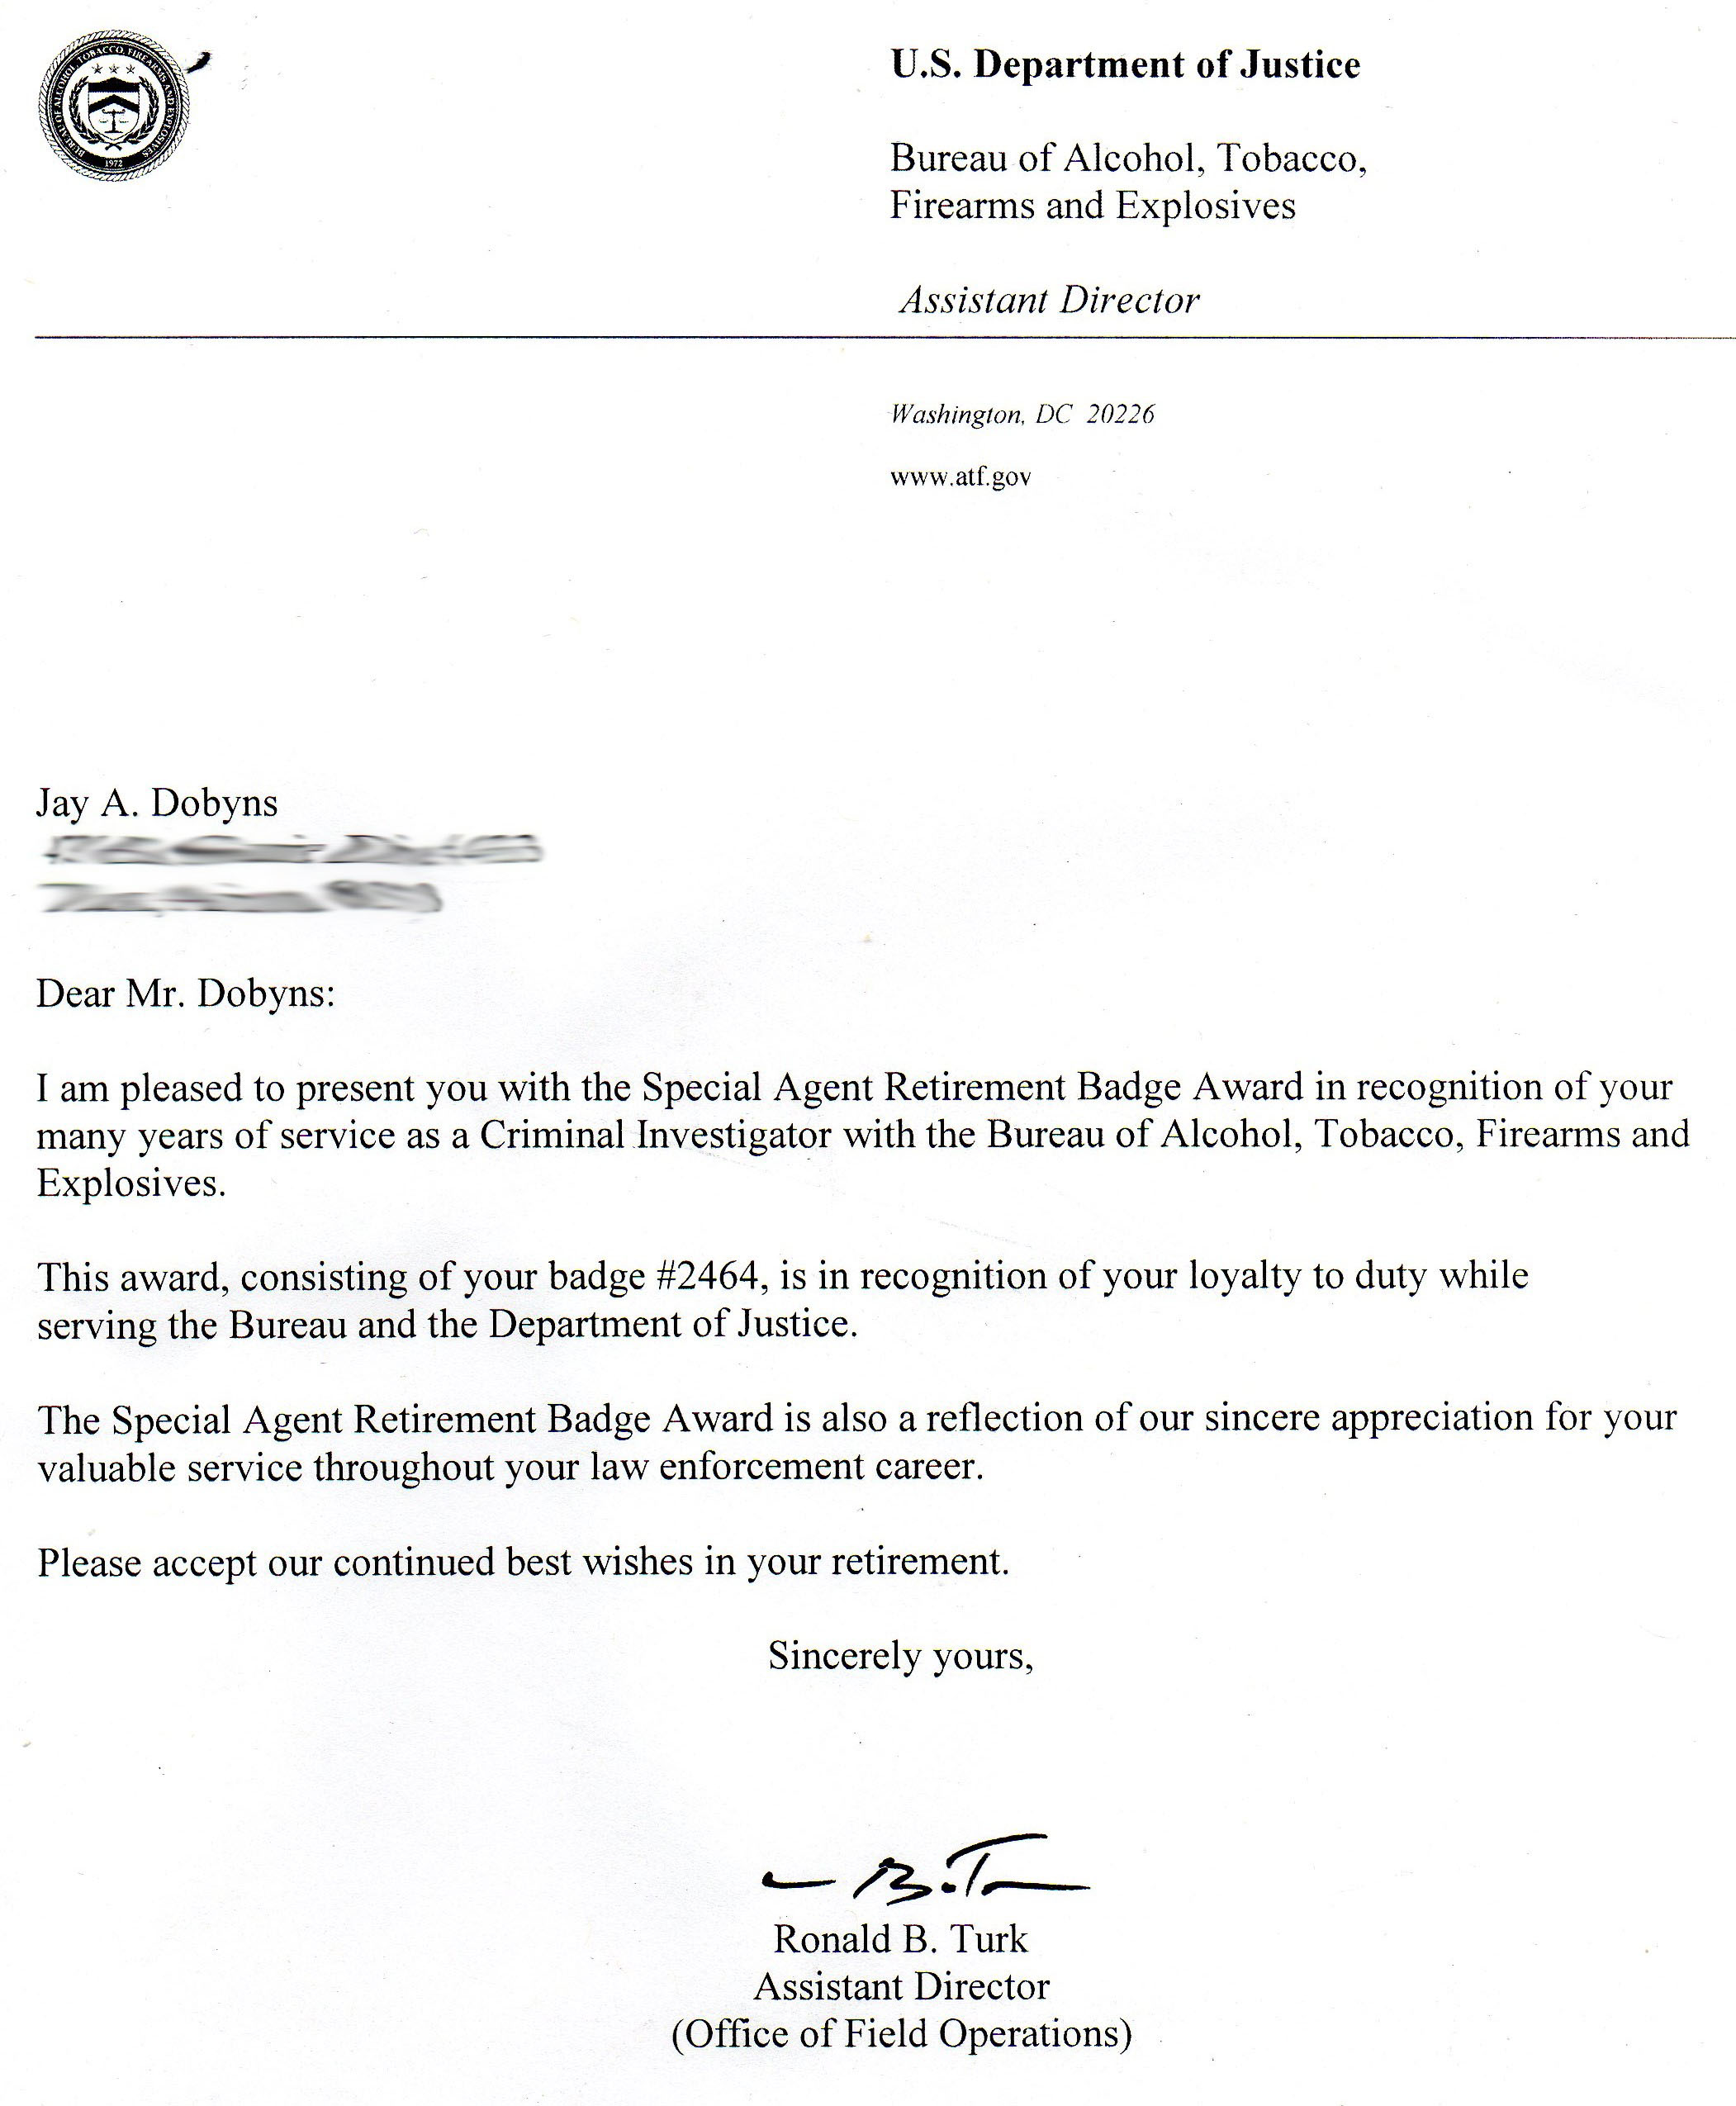 Resignation Letter Due To Unethical Boss